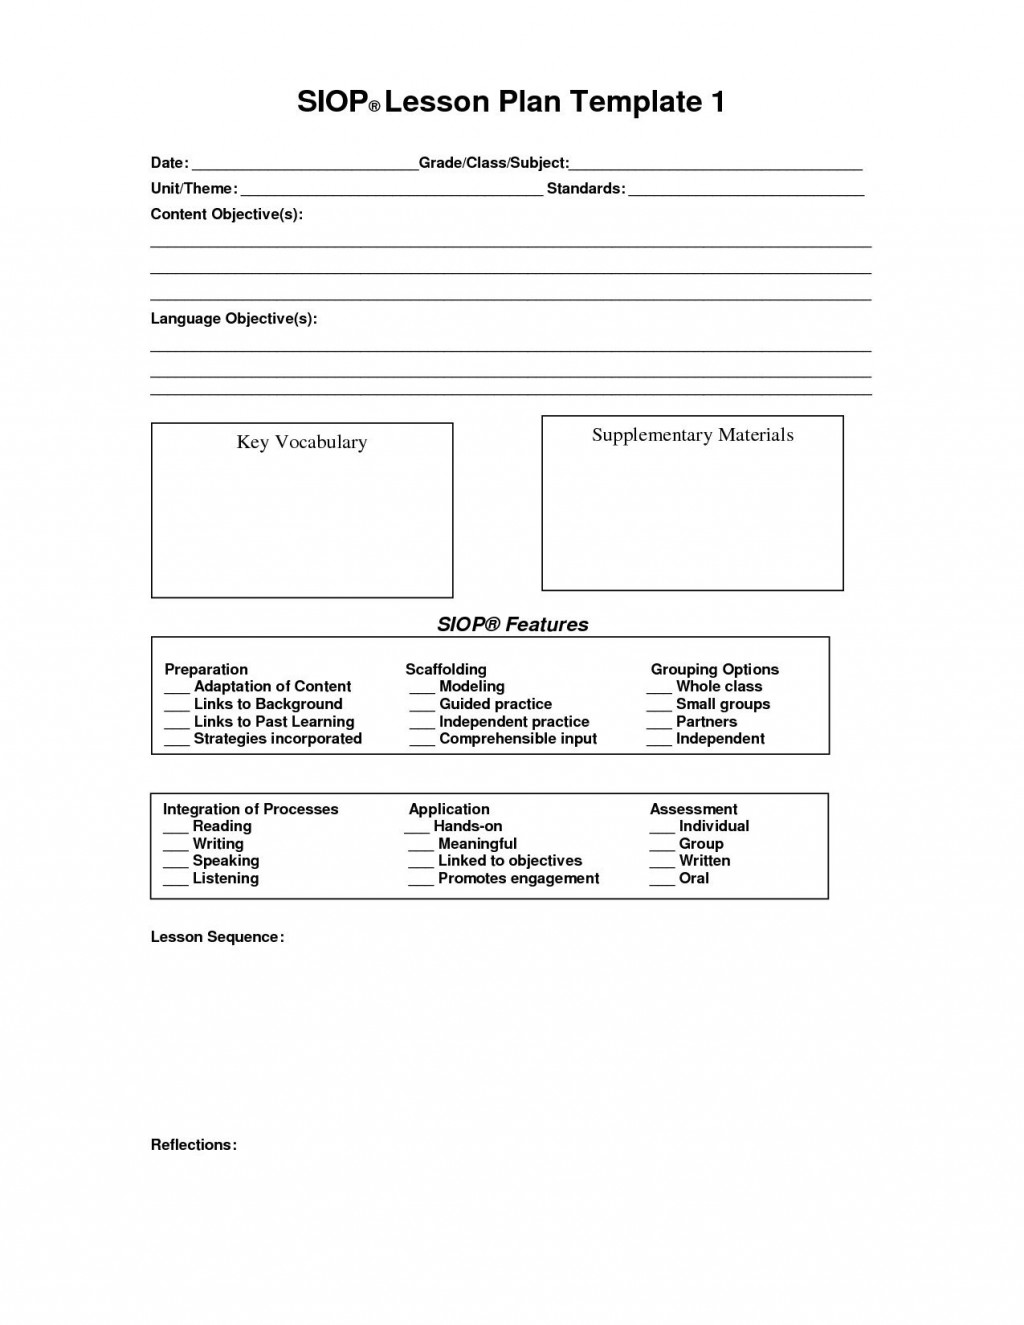 000 Staggering Siop Lesson Plan Template 1 Image  Example First Grade Word Document 1stLarge